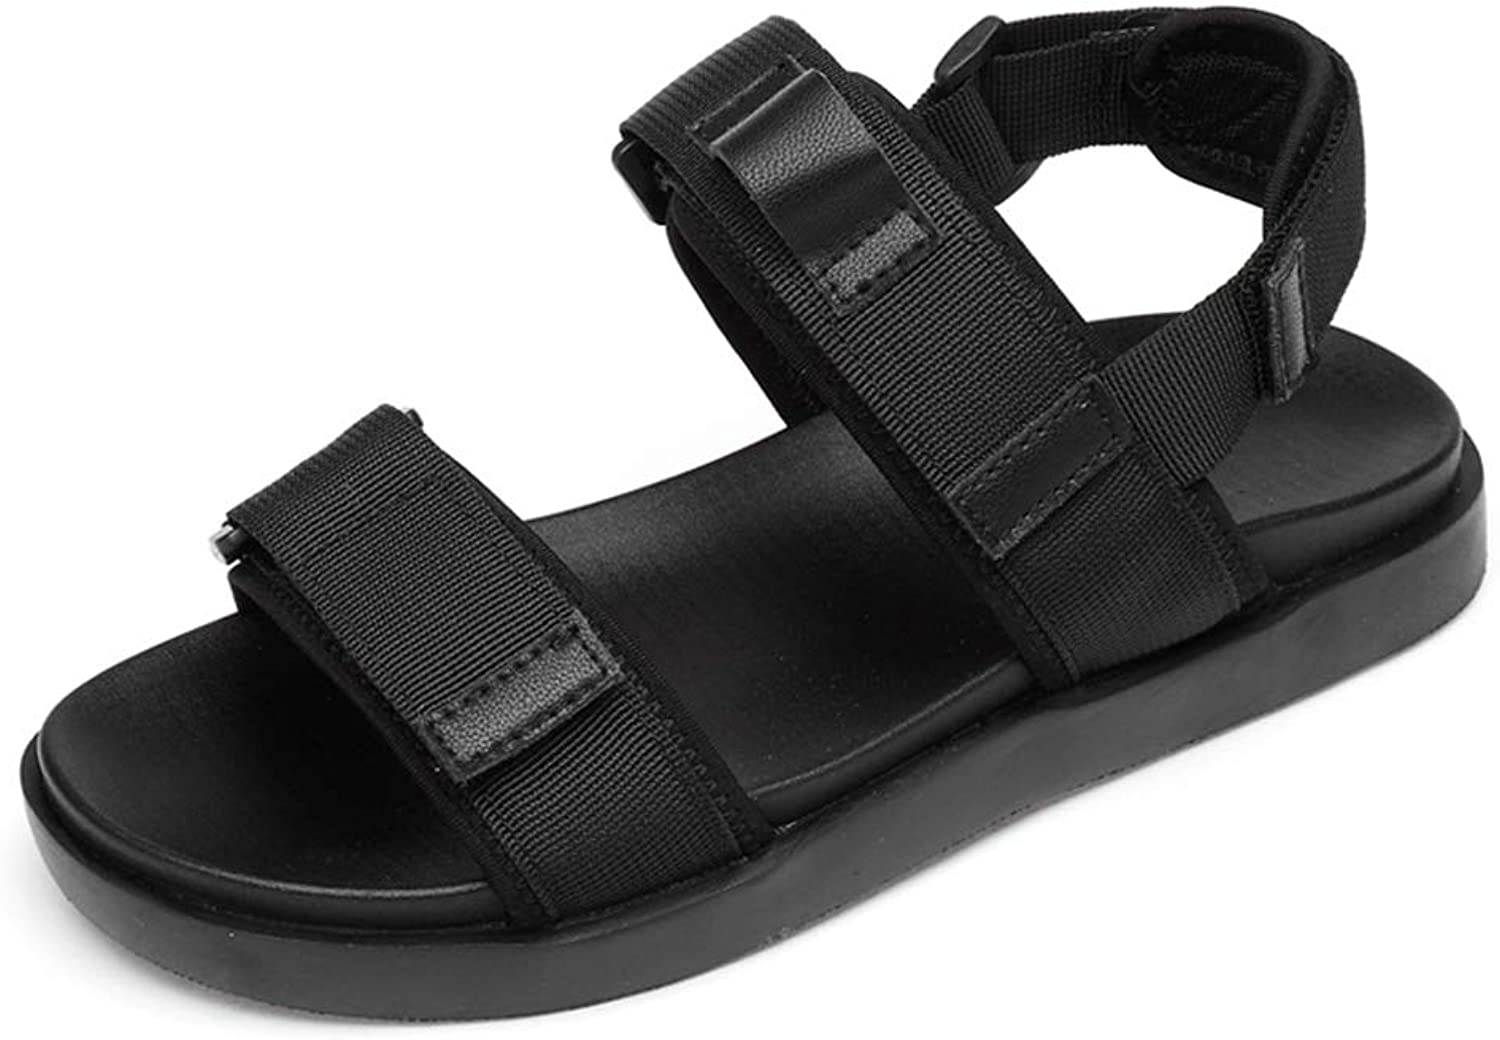 Easy Go Shopping Beach Sports Sandals for Men Hook & Loop Strap Nylon Tape Open Toe Water Flat shoes Cricket shoes (color   Black, Size   9 UK)